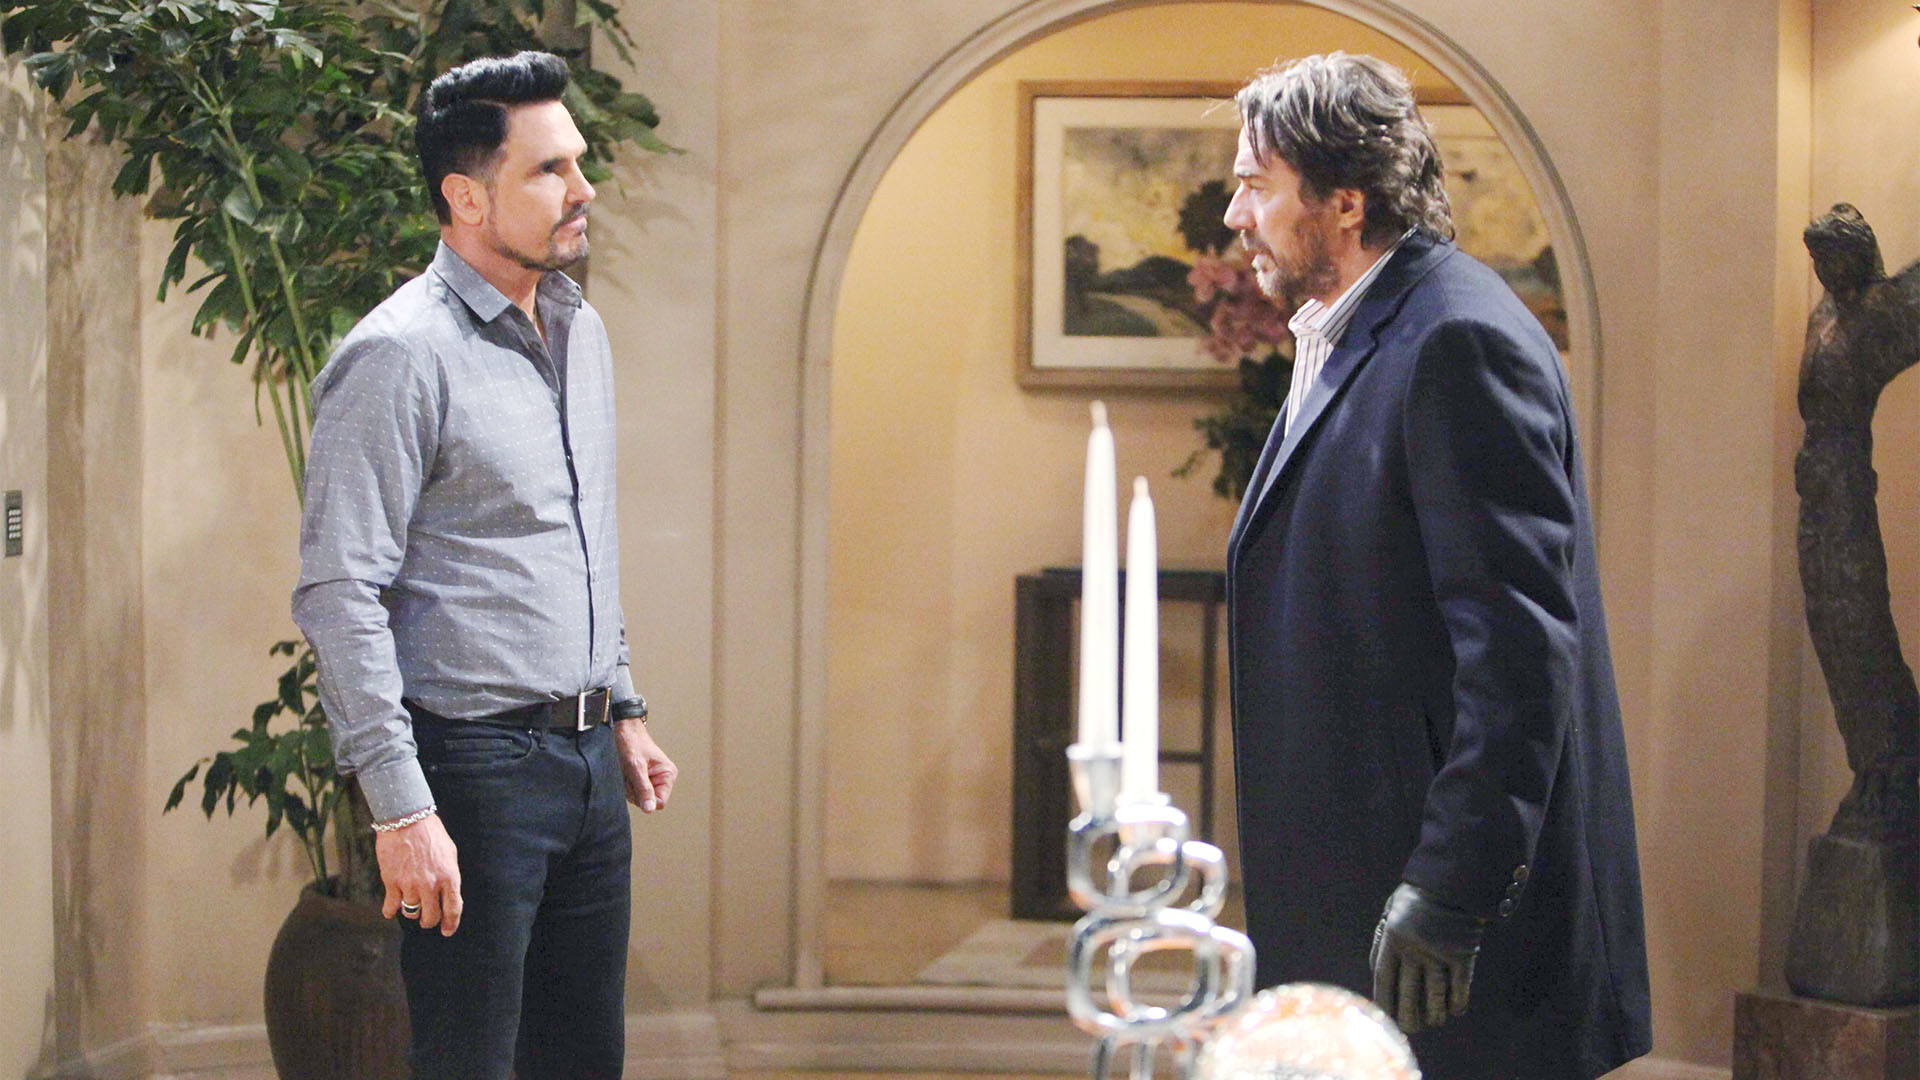 Ridge becomes unhinged over Bill's latest moves on Steffy and decides to take matters in to his own hands.